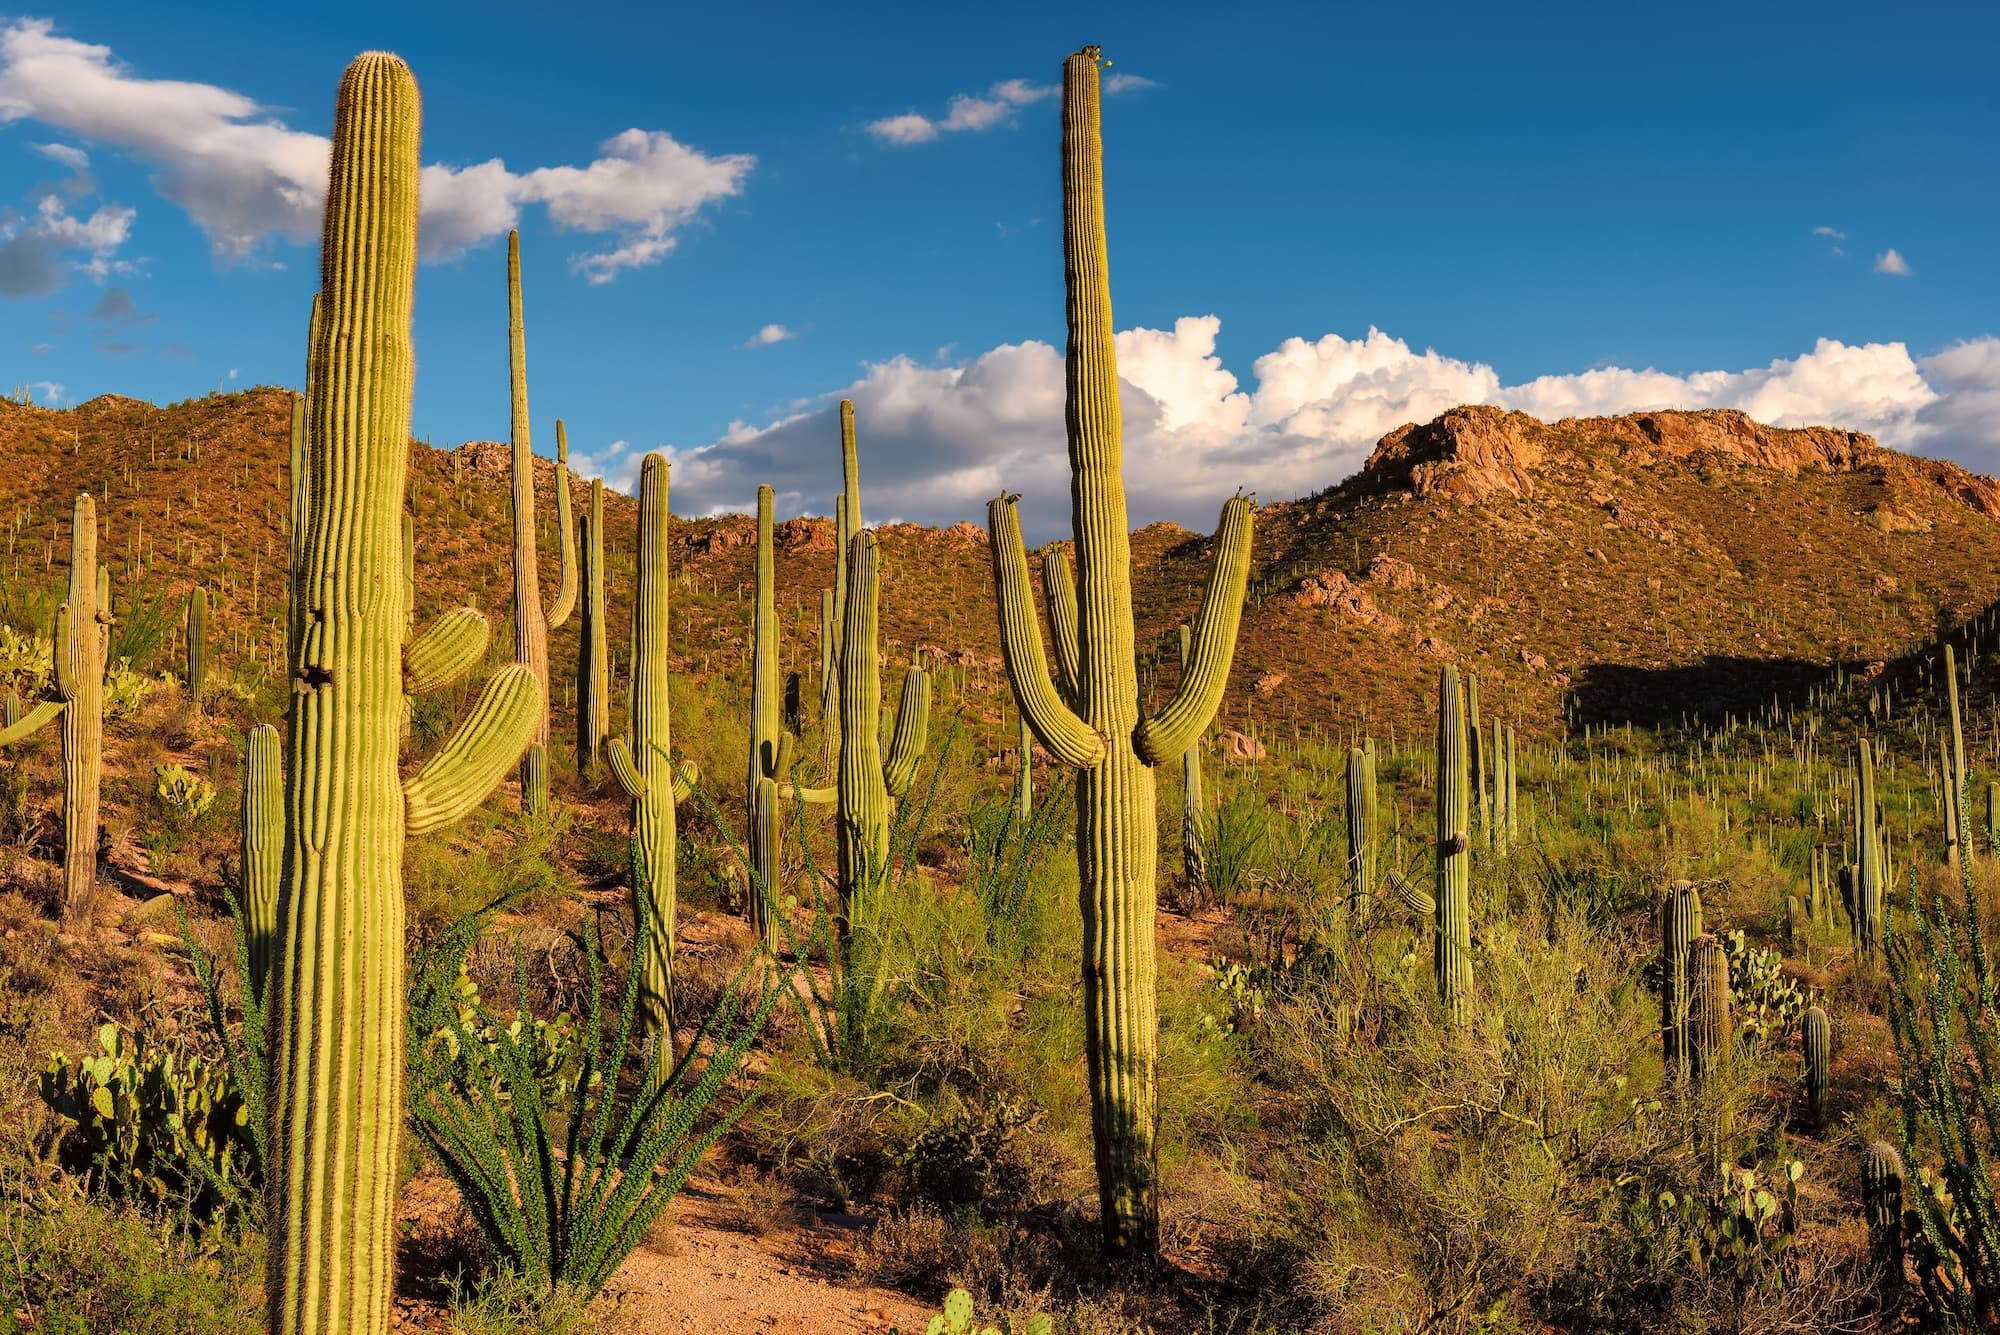 Explore the East and West side of Saguaro National Park with this outdoor guide including what to do, best hikes, viewpoints, and more.